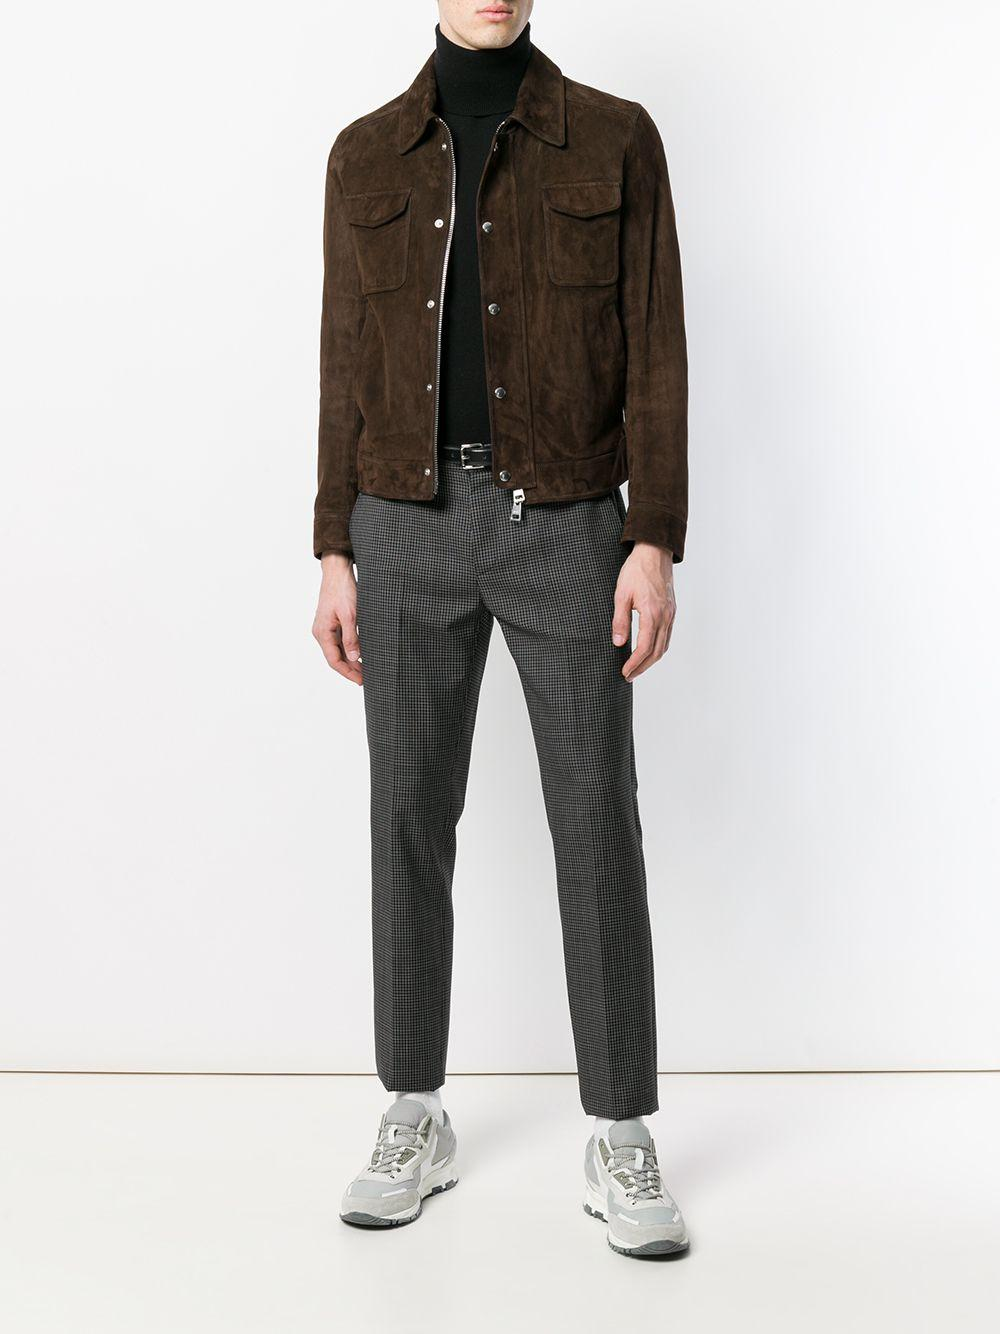 AMI Suede Zipped Jacket in Brown for Men